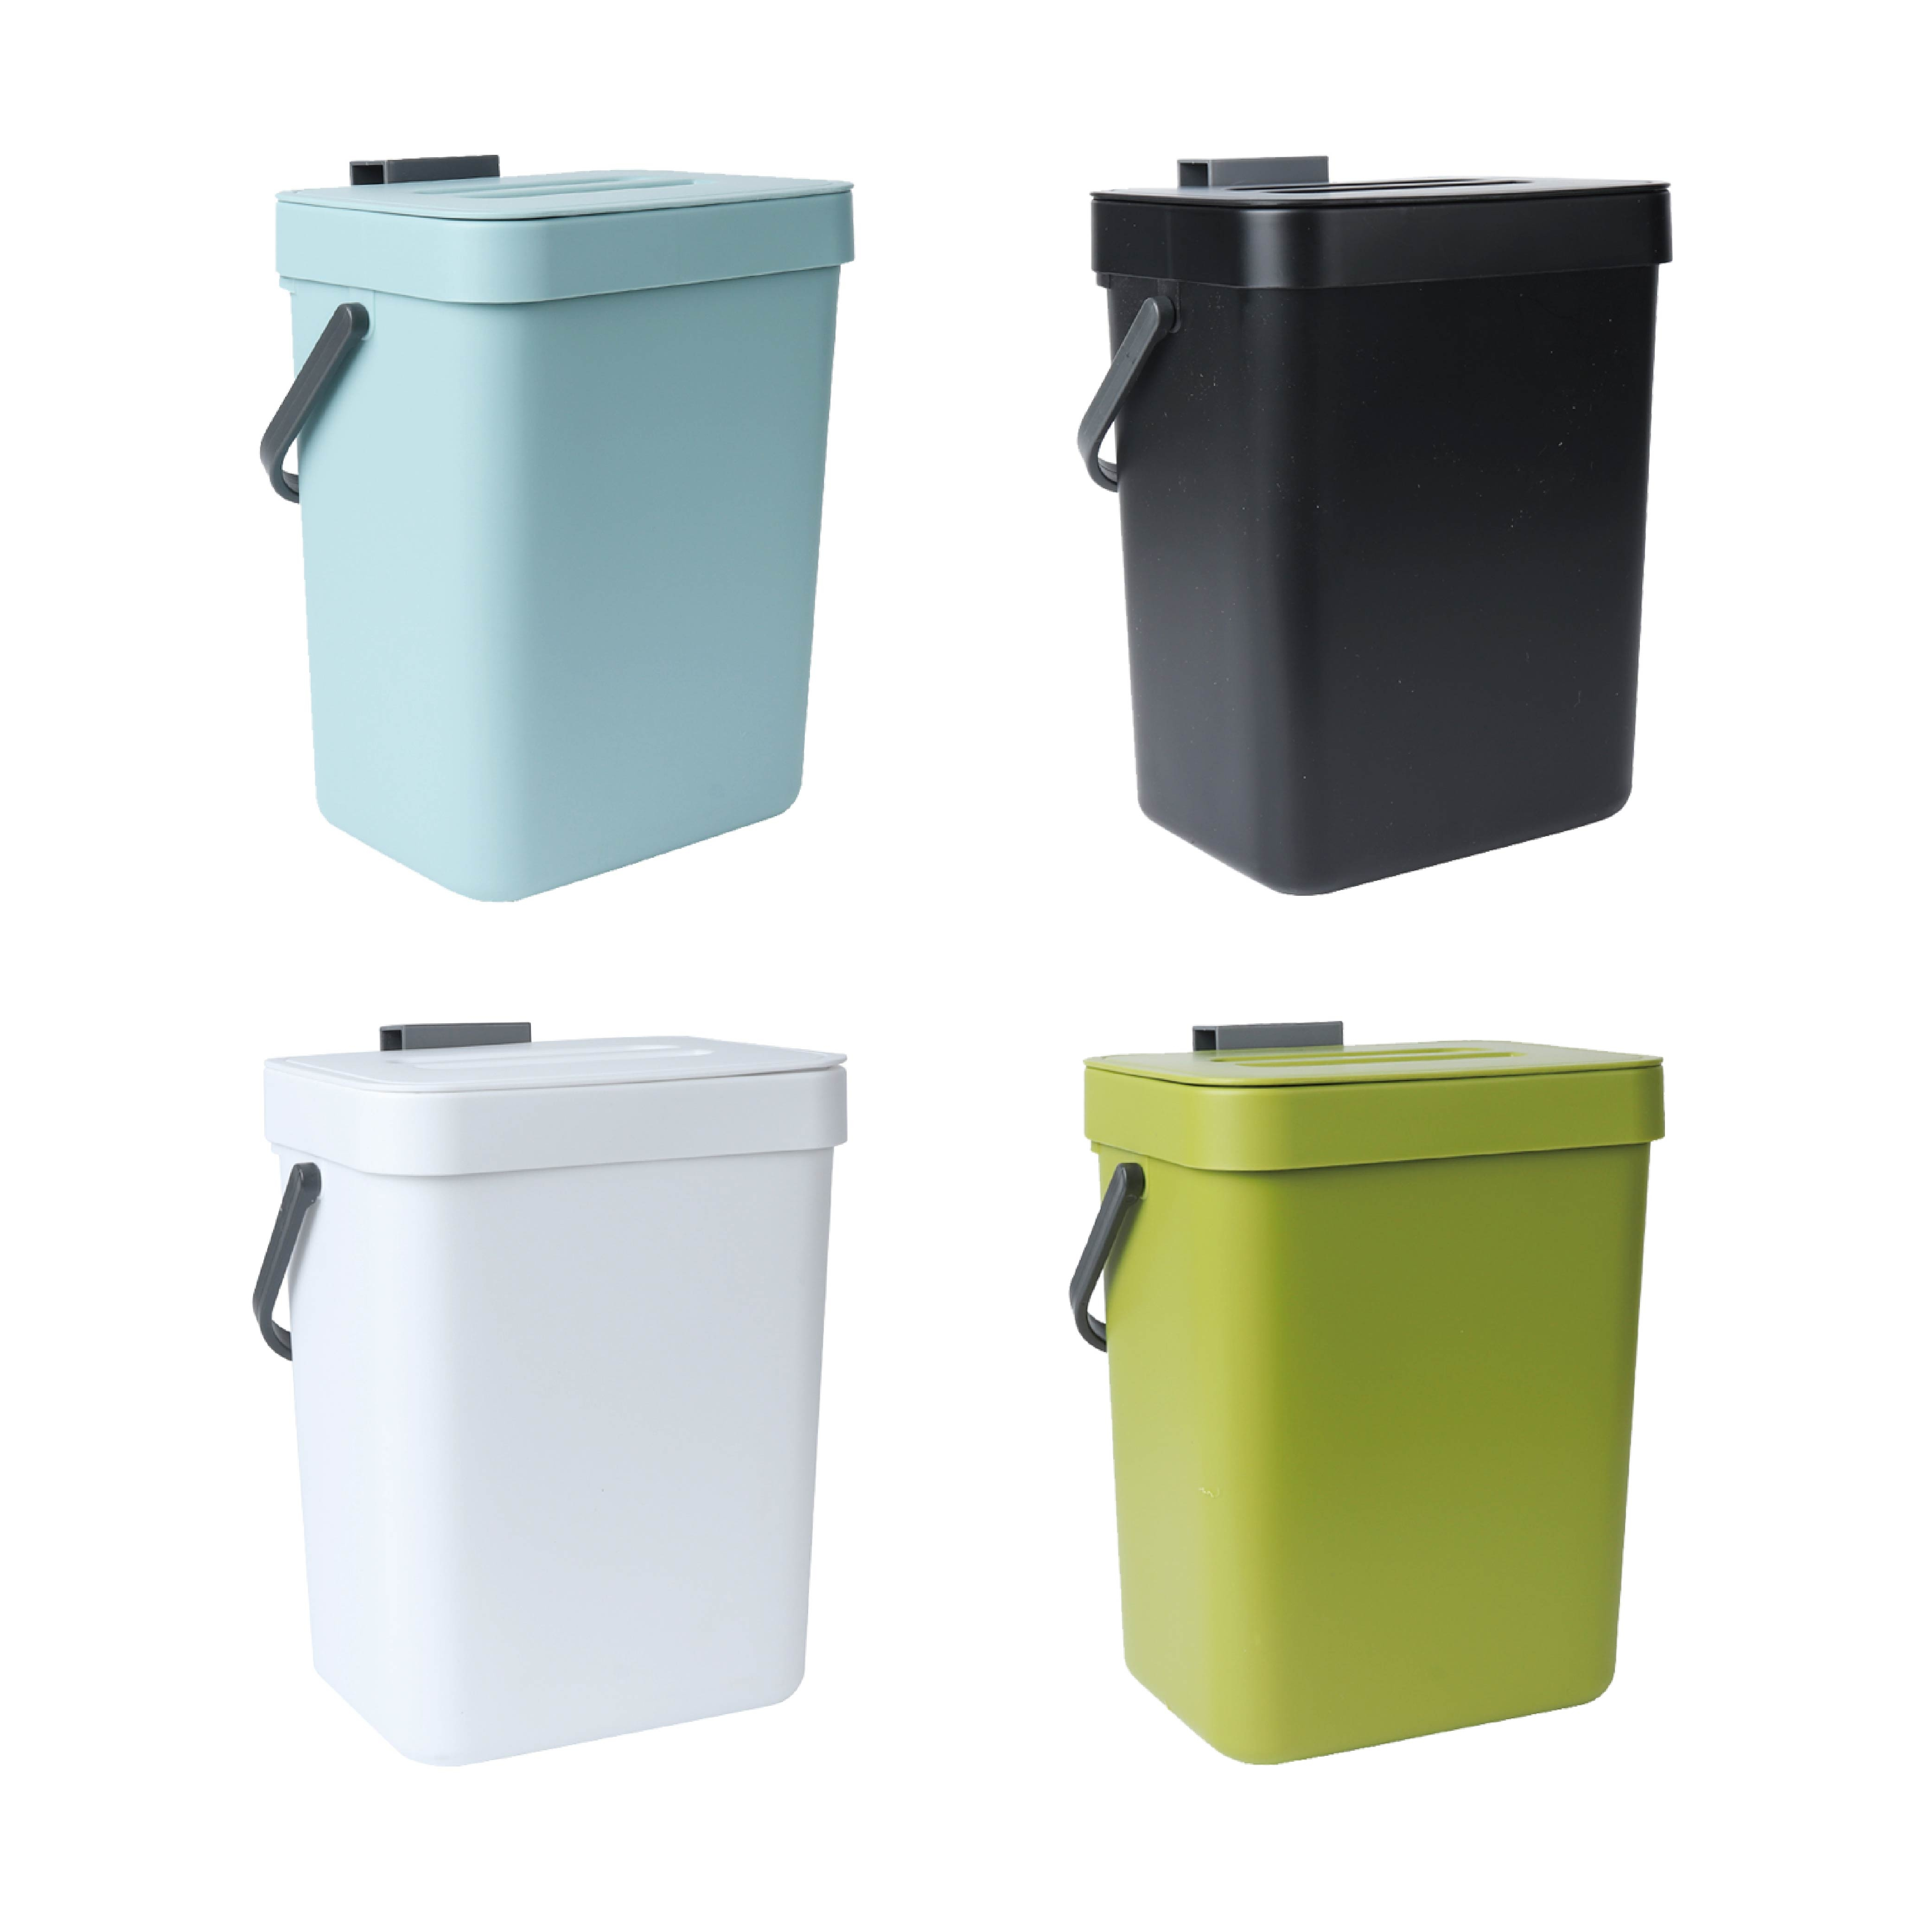 Wall-mounted Kitchen Trash Can With Handle